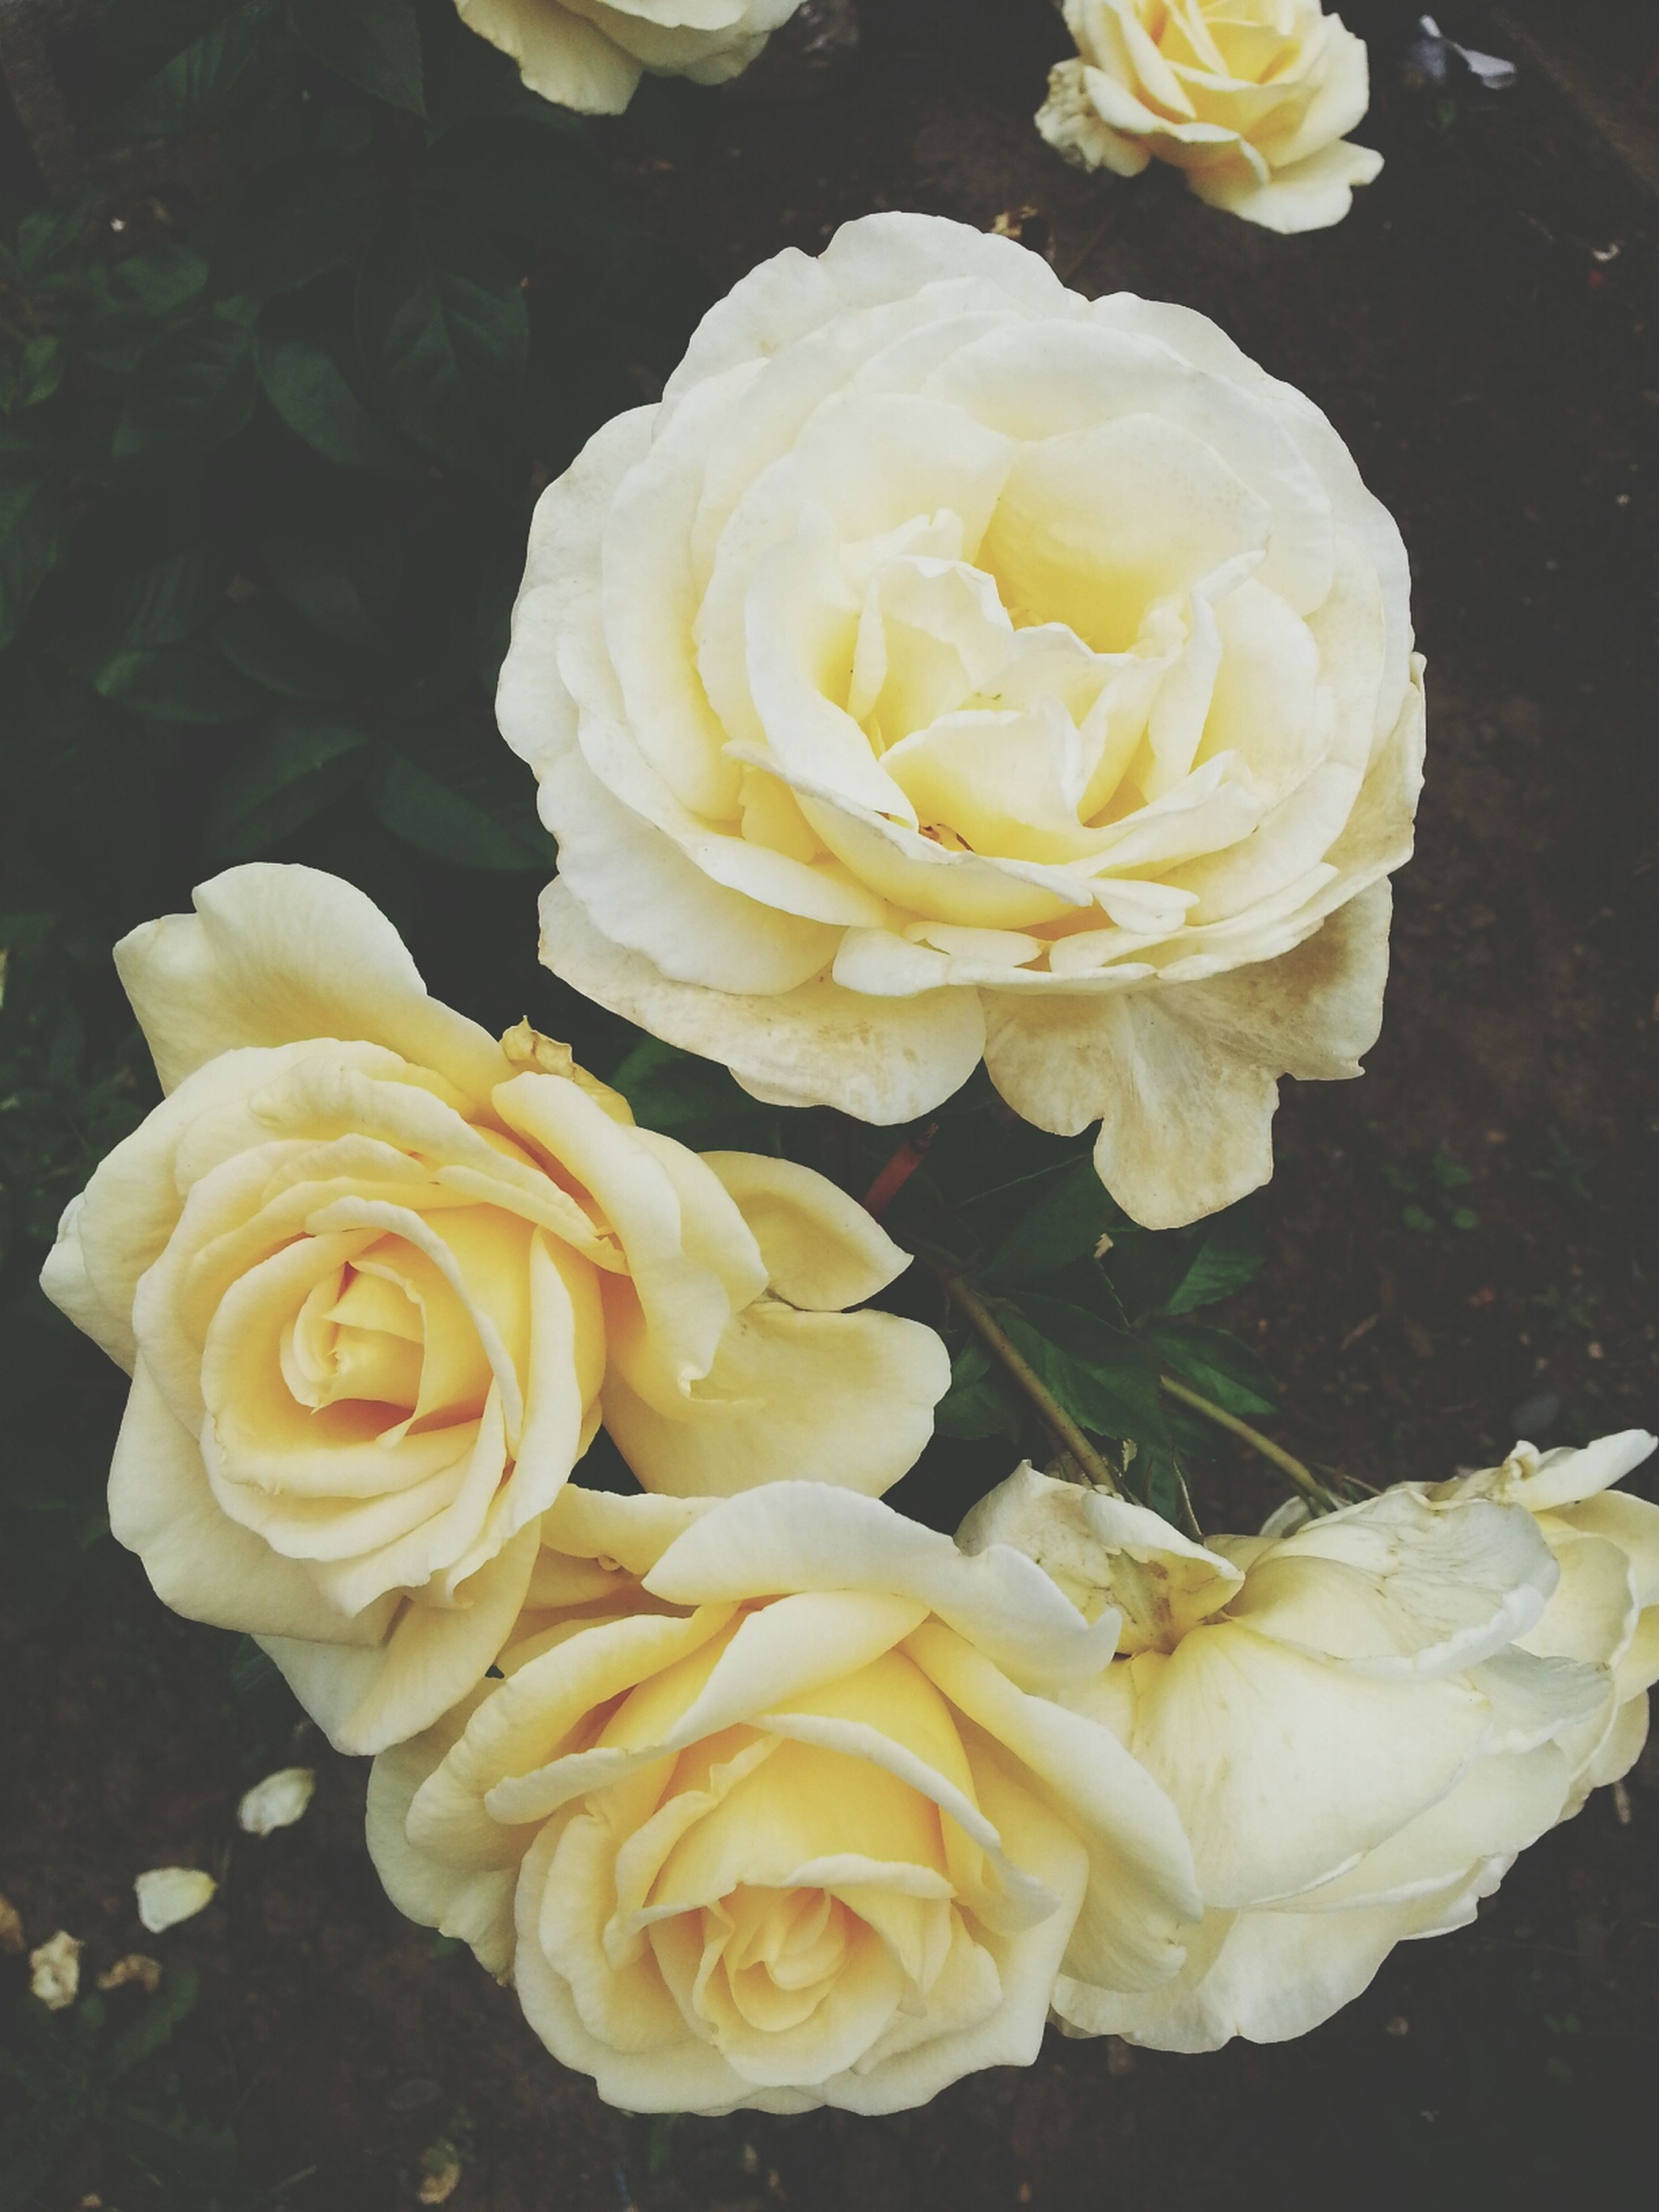 flower, petal, rose - flower, flower head, freshness, fragility, beauty in nature, close-up, high angle view, rose, blooming, nature, single flower, yellow, growth, plant, no people, in bloom, outdoors, day